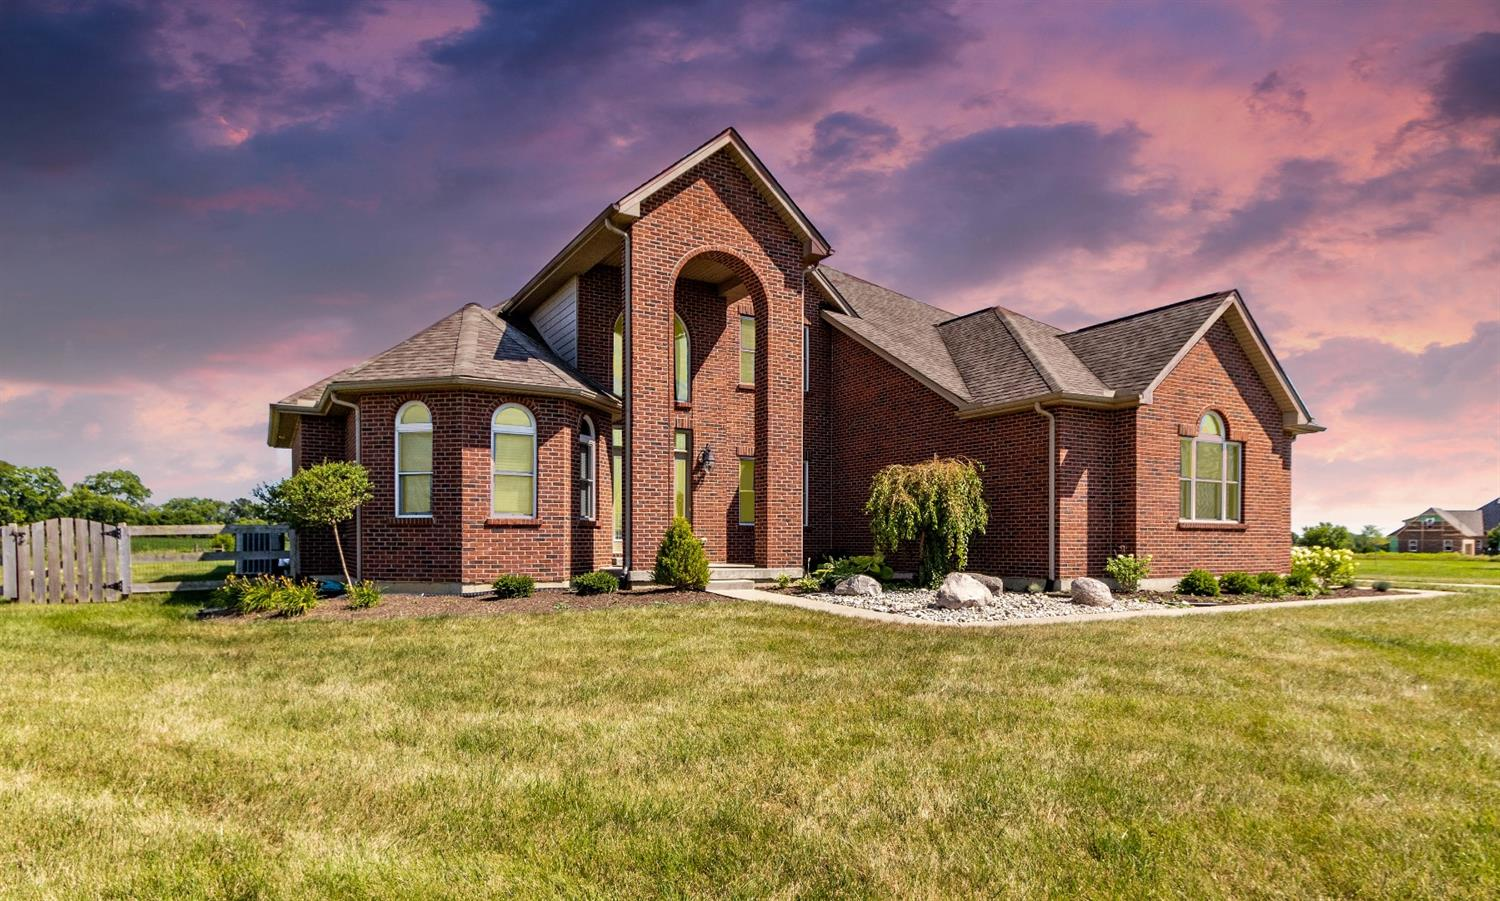 3927 Roy Rogers Dr Wayne Twp. (Butler Co.), OH